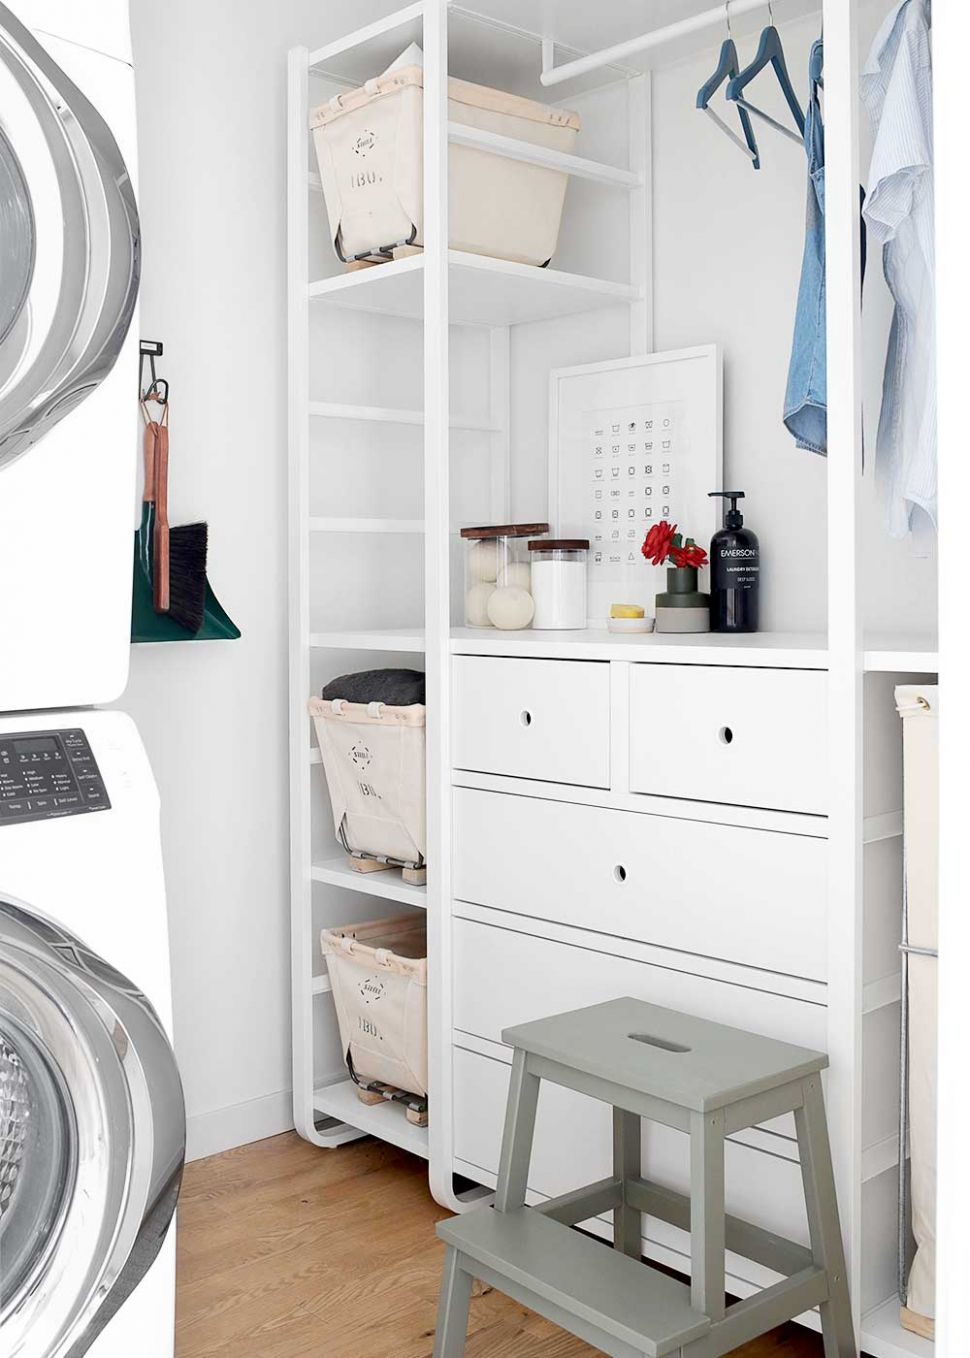 11 Favorite Laundry Rooms with Storage Ideas to Steal